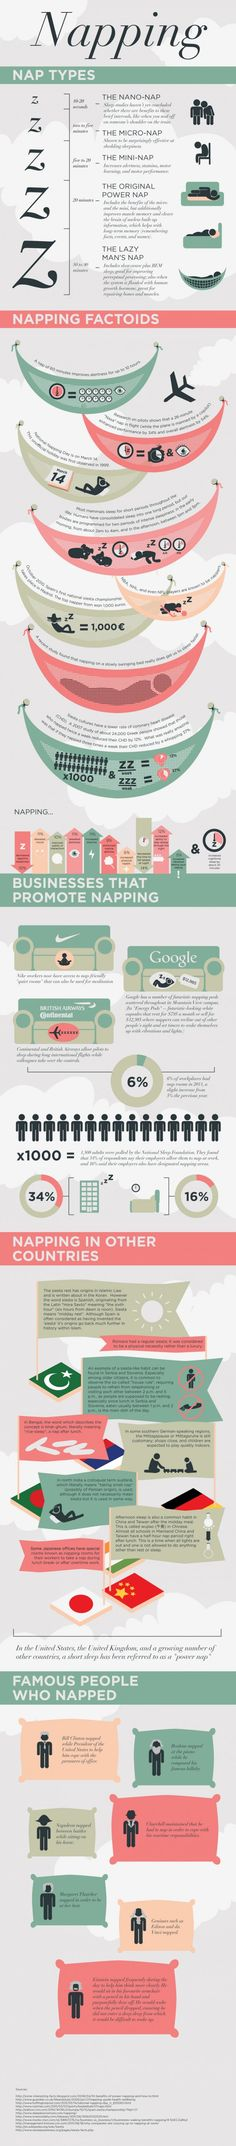 interesting facts about napping.....maybe i should starting taking a nap regularly ;)